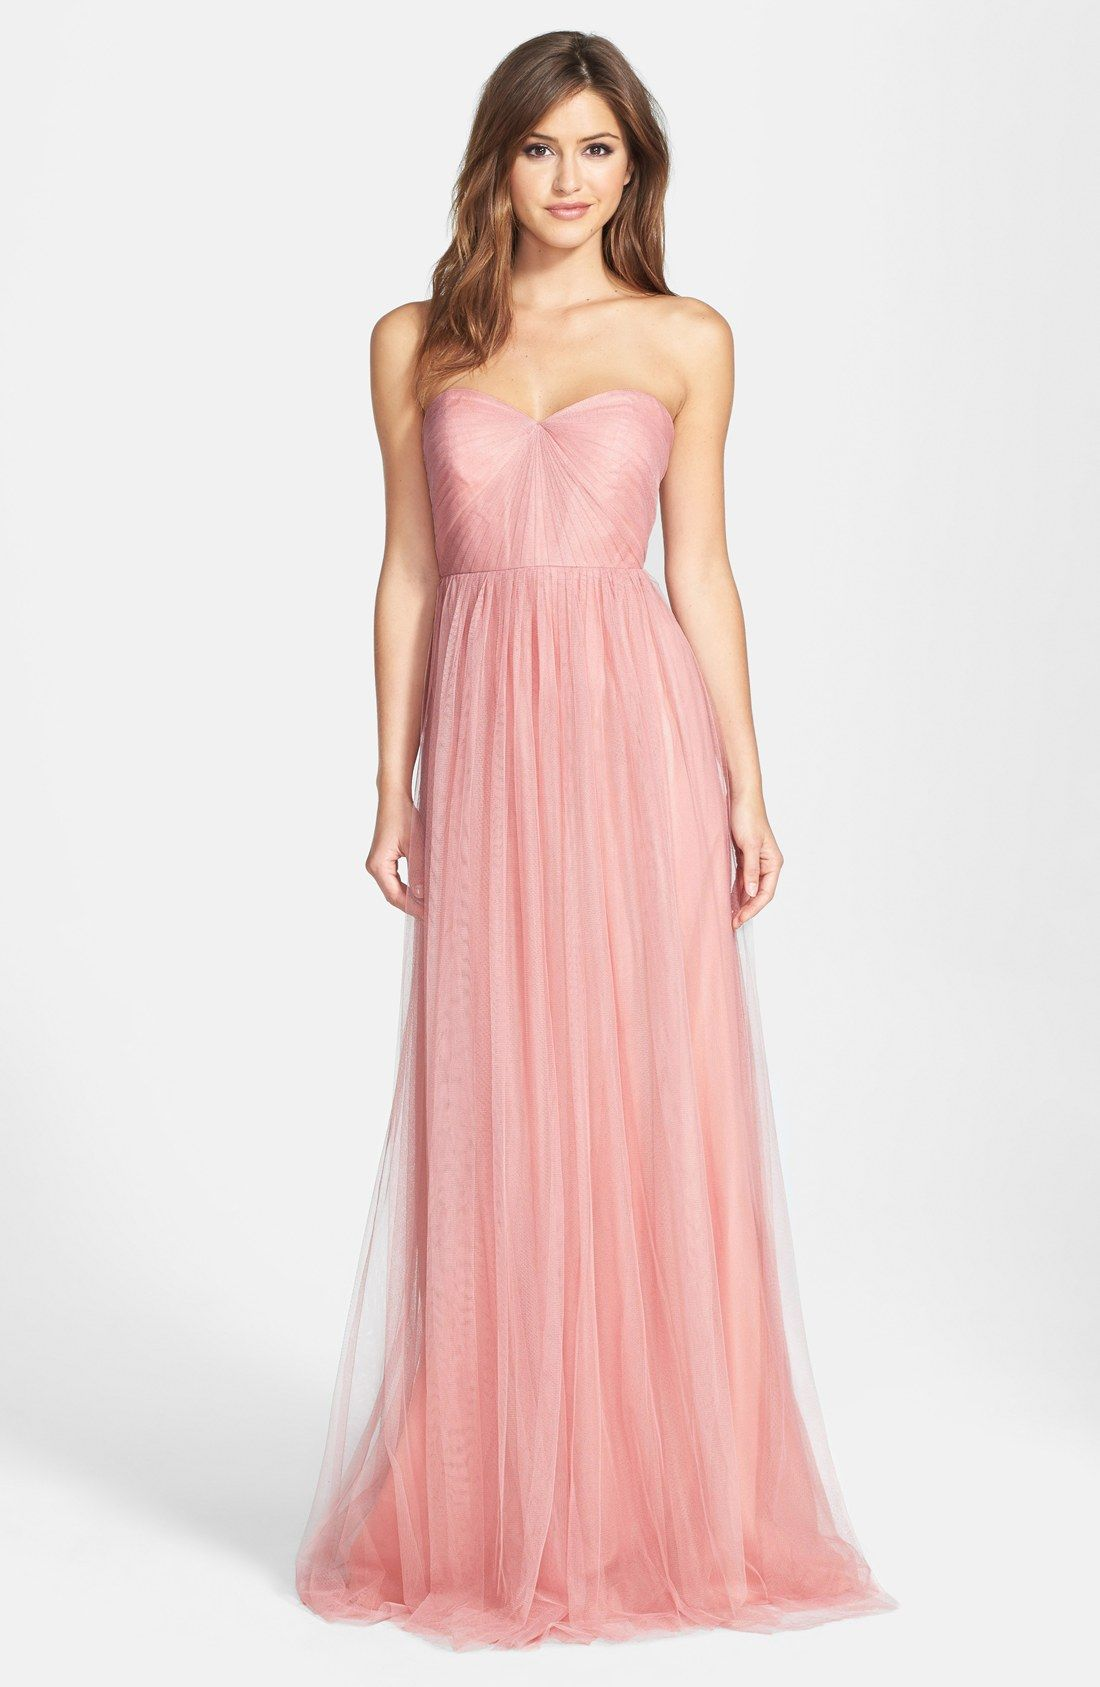 Annabelle Convertible Tulle Column Dress | Column dress, Columns and ...